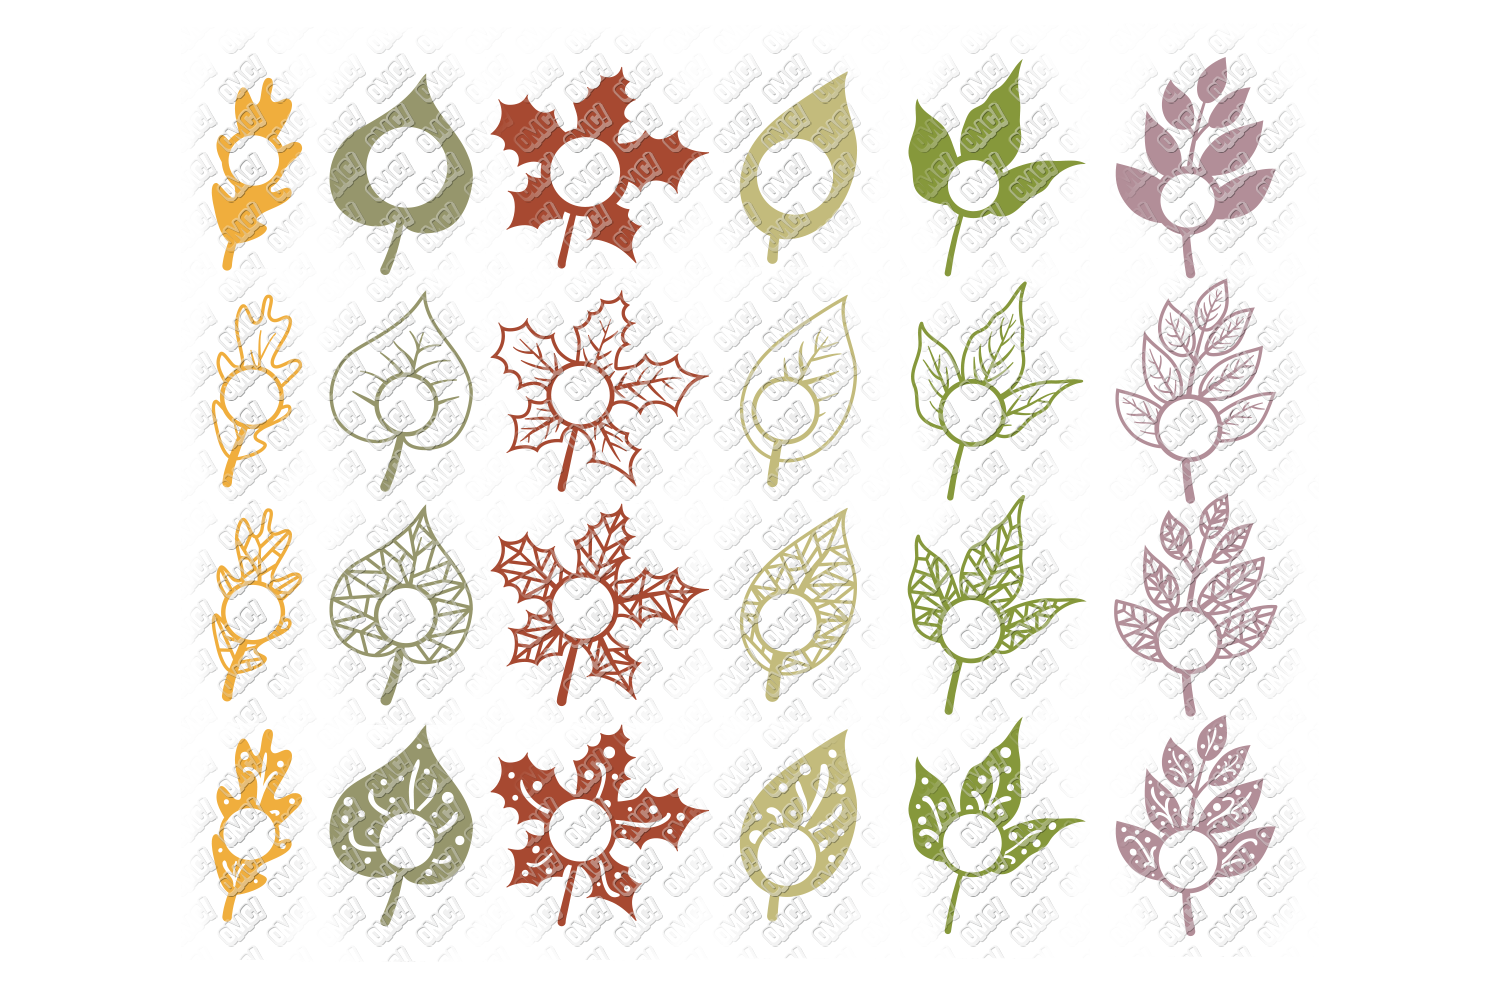 Leaf SVG Fall Leaves Autumn in SVG, DXF, PNG, EPS, JPEG example image 4